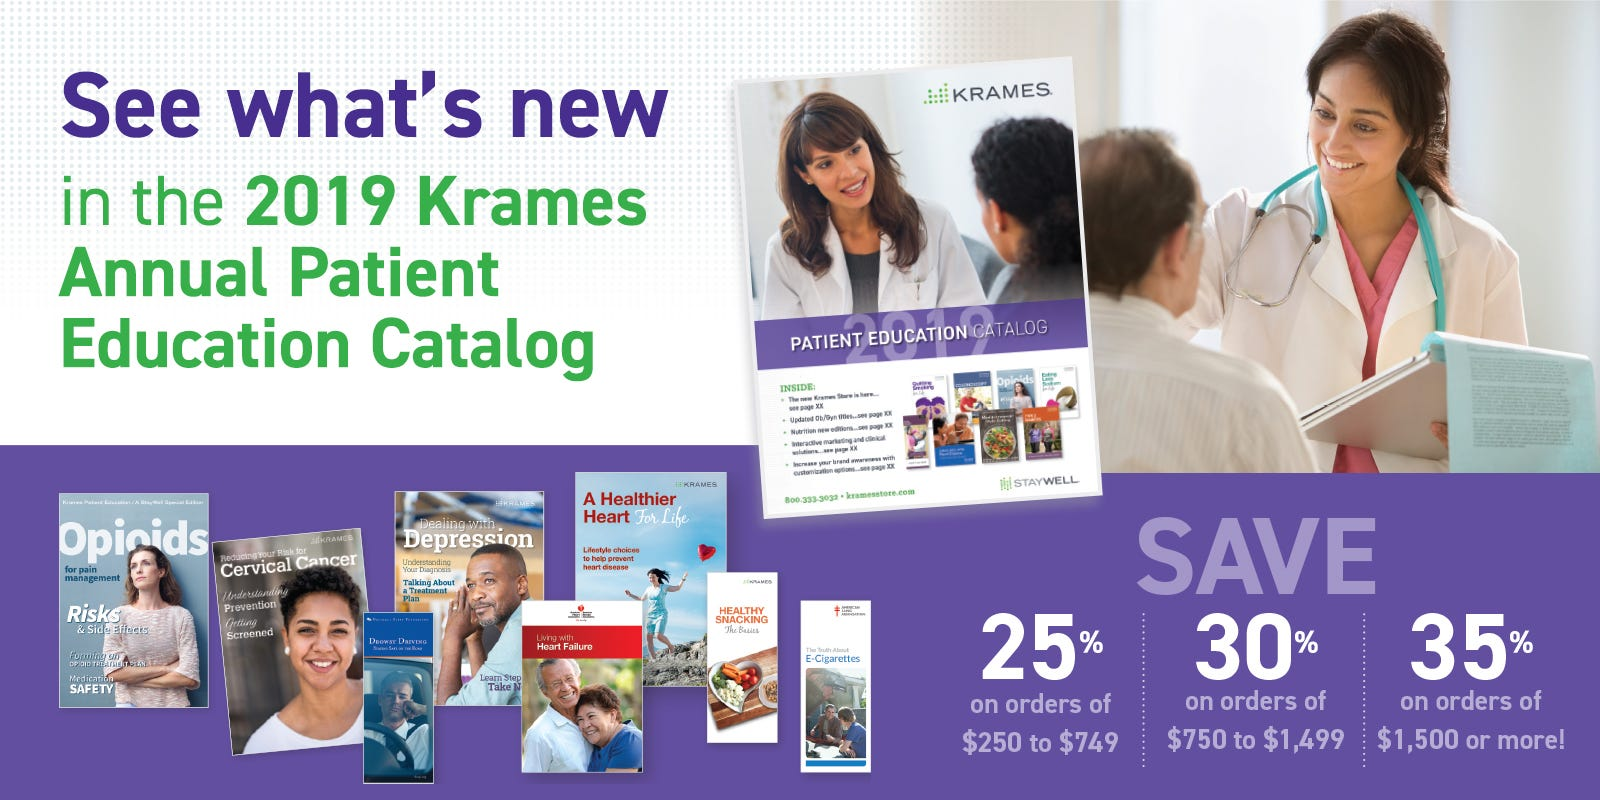 See what's New in the 2019 Krames Annal Patient Education Catalog